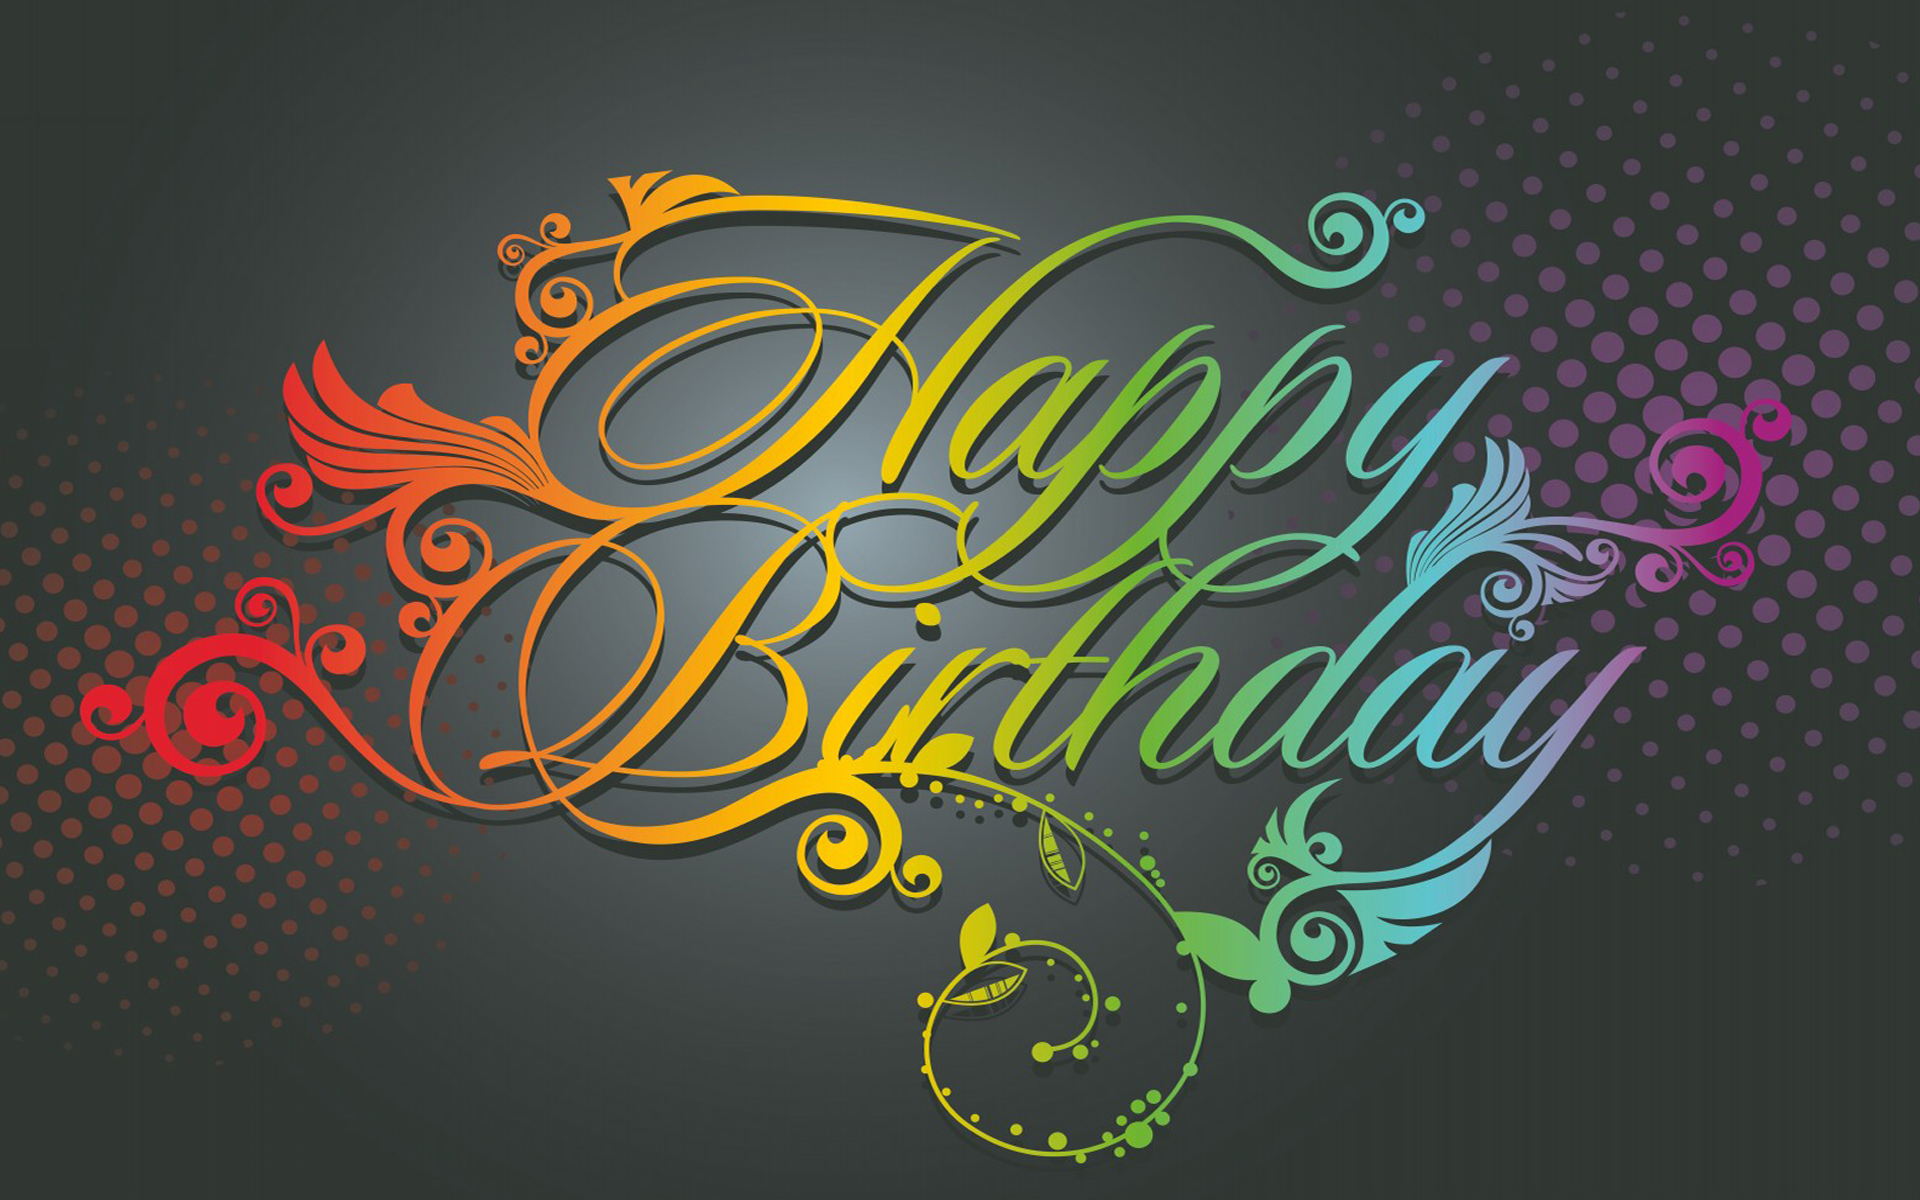 hd happy birthday wishes wallpapers ; Happy-Birthday-Wishes-HD-Wallpapers